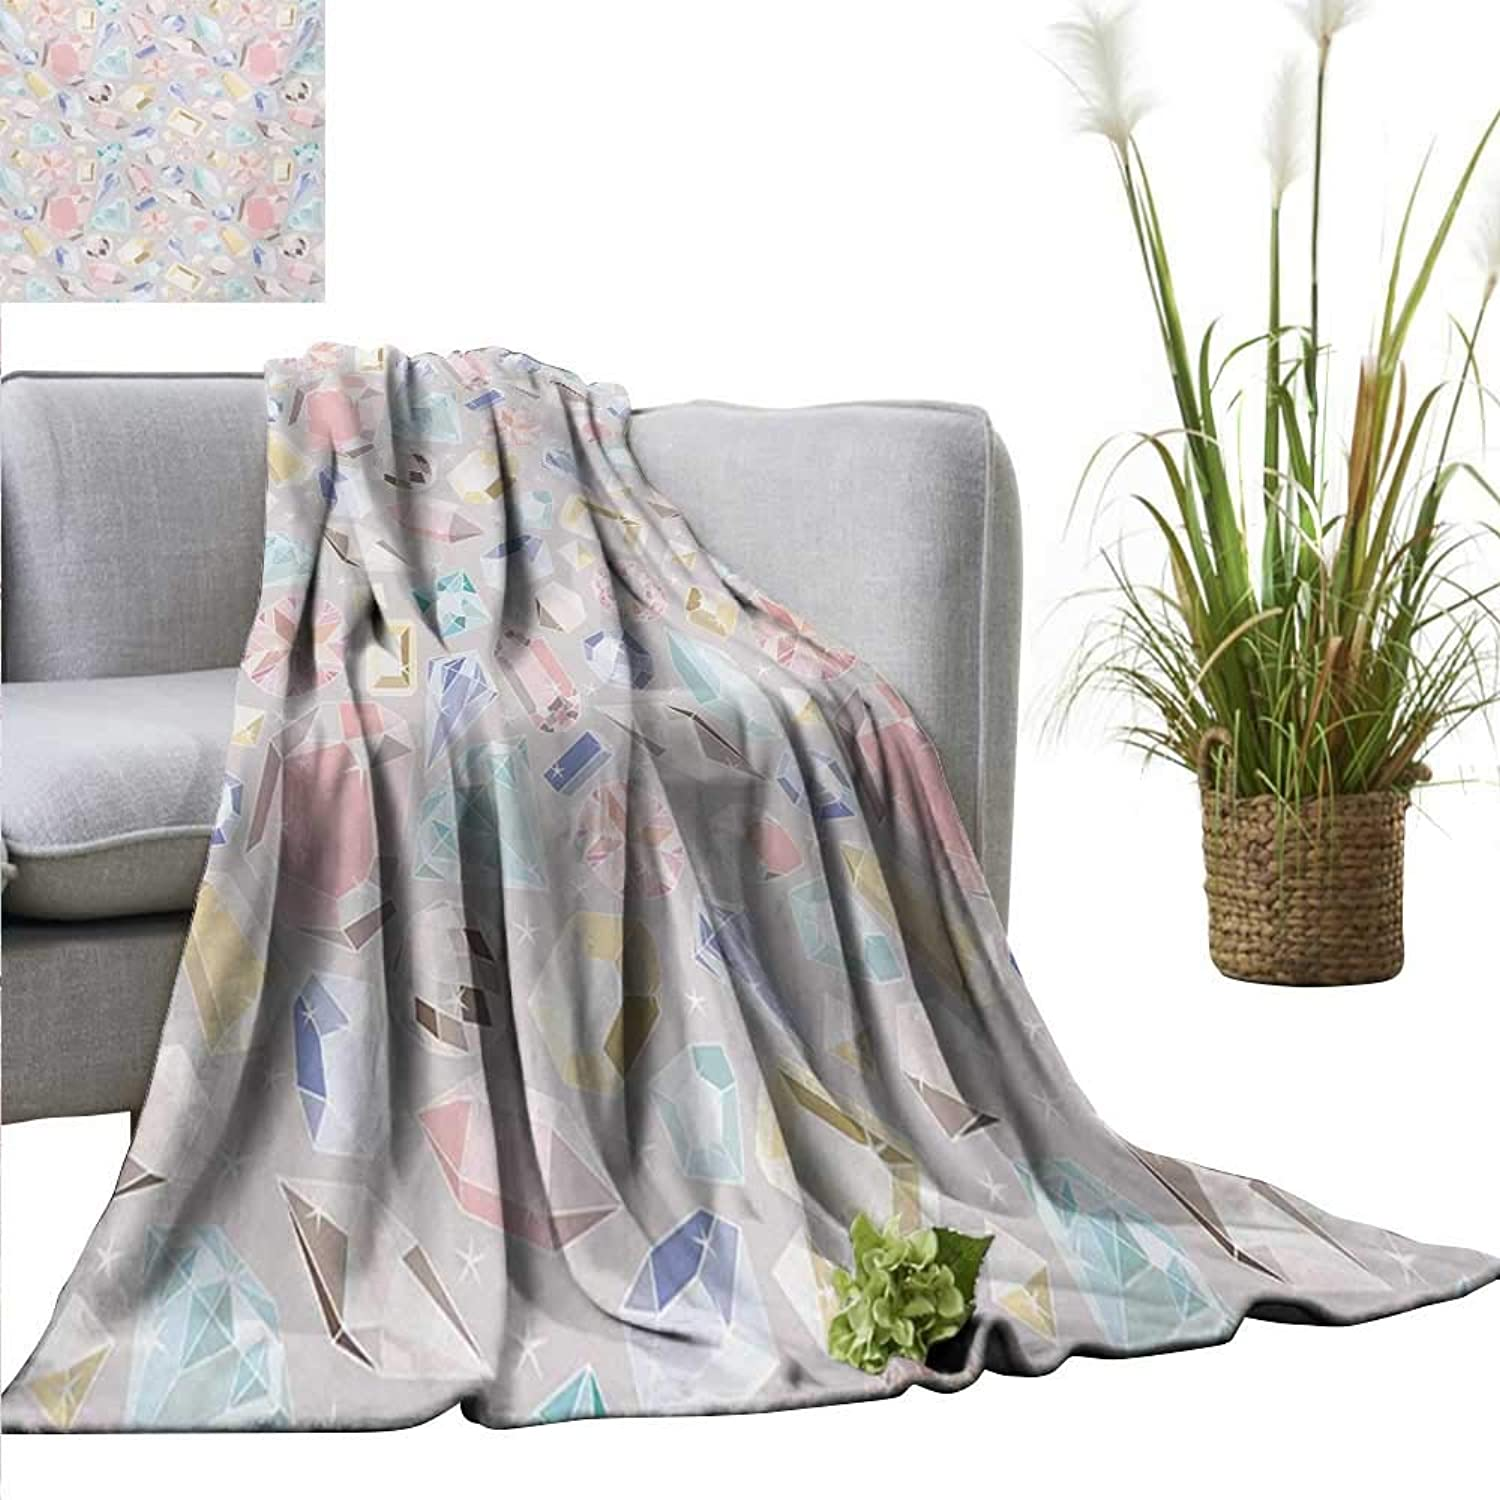 AndyTours Bed Blanket,Pastel,colorful Diamond Gemstone Figures Rich Feminine Women Fashion Theme Digital Print,Multicolor,for Bed & Couch Sofa Easy Care 60 x63